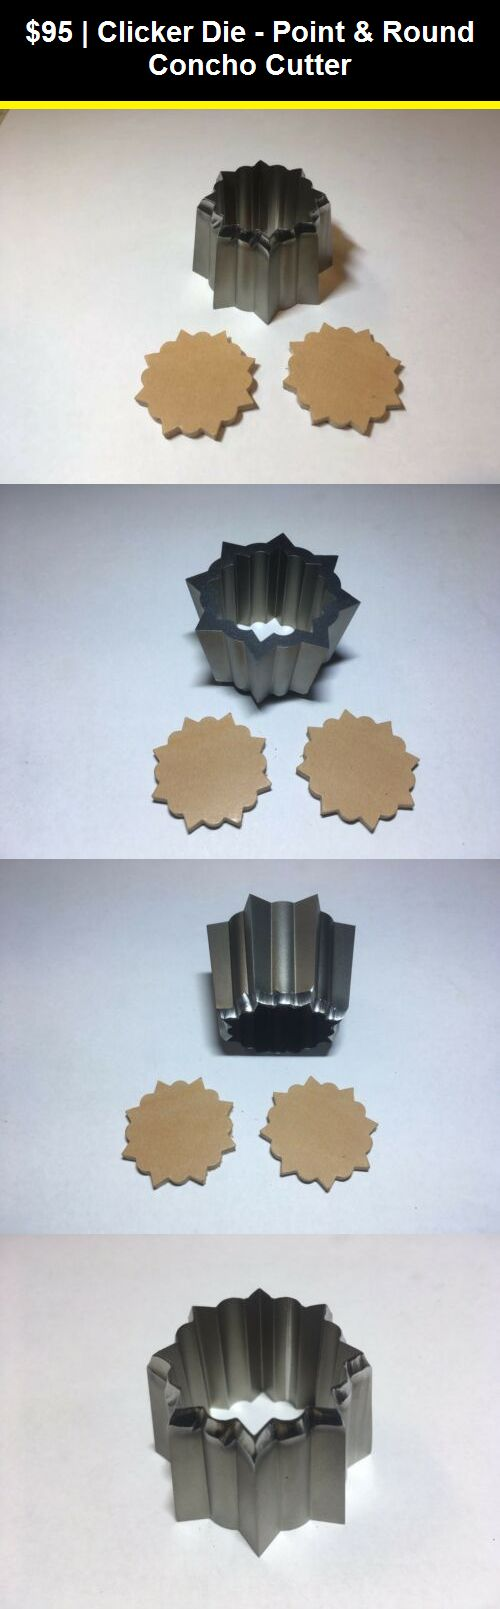 Leather Cutting Tools 183136 Clicker Die